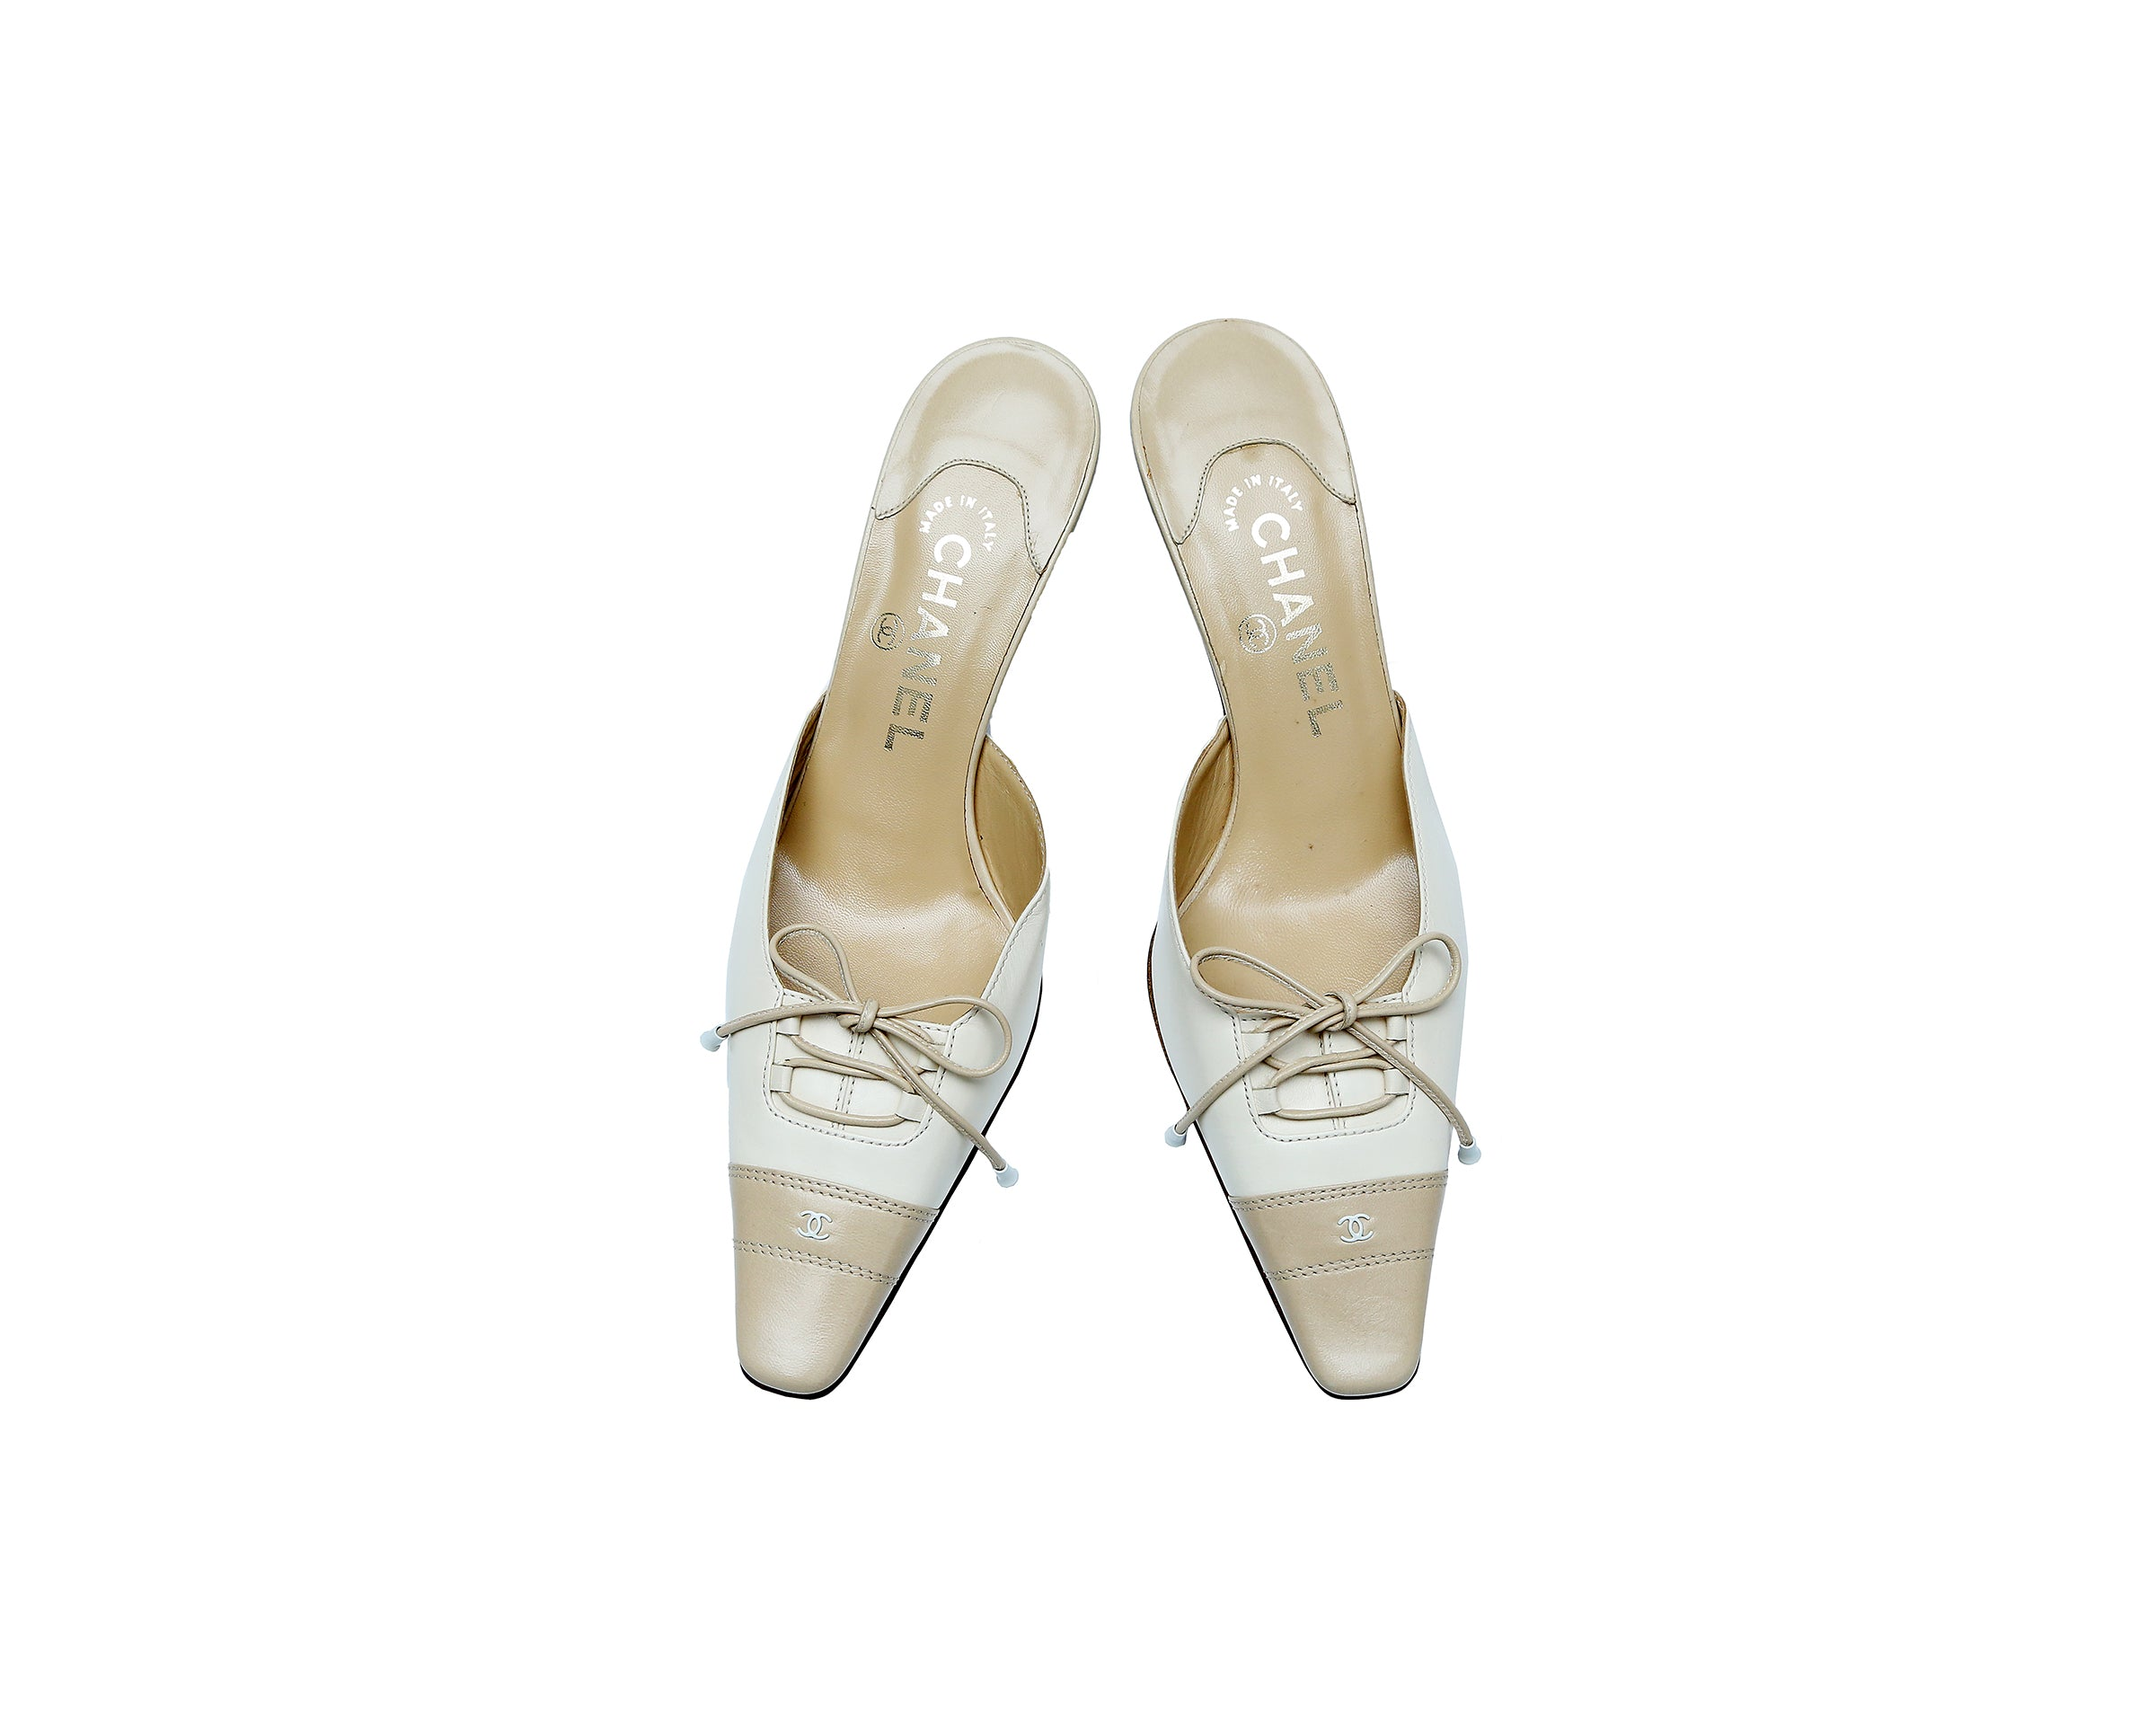 Chanel Beige and Creme Lace Up Heeled Mules Size 37 (EU)